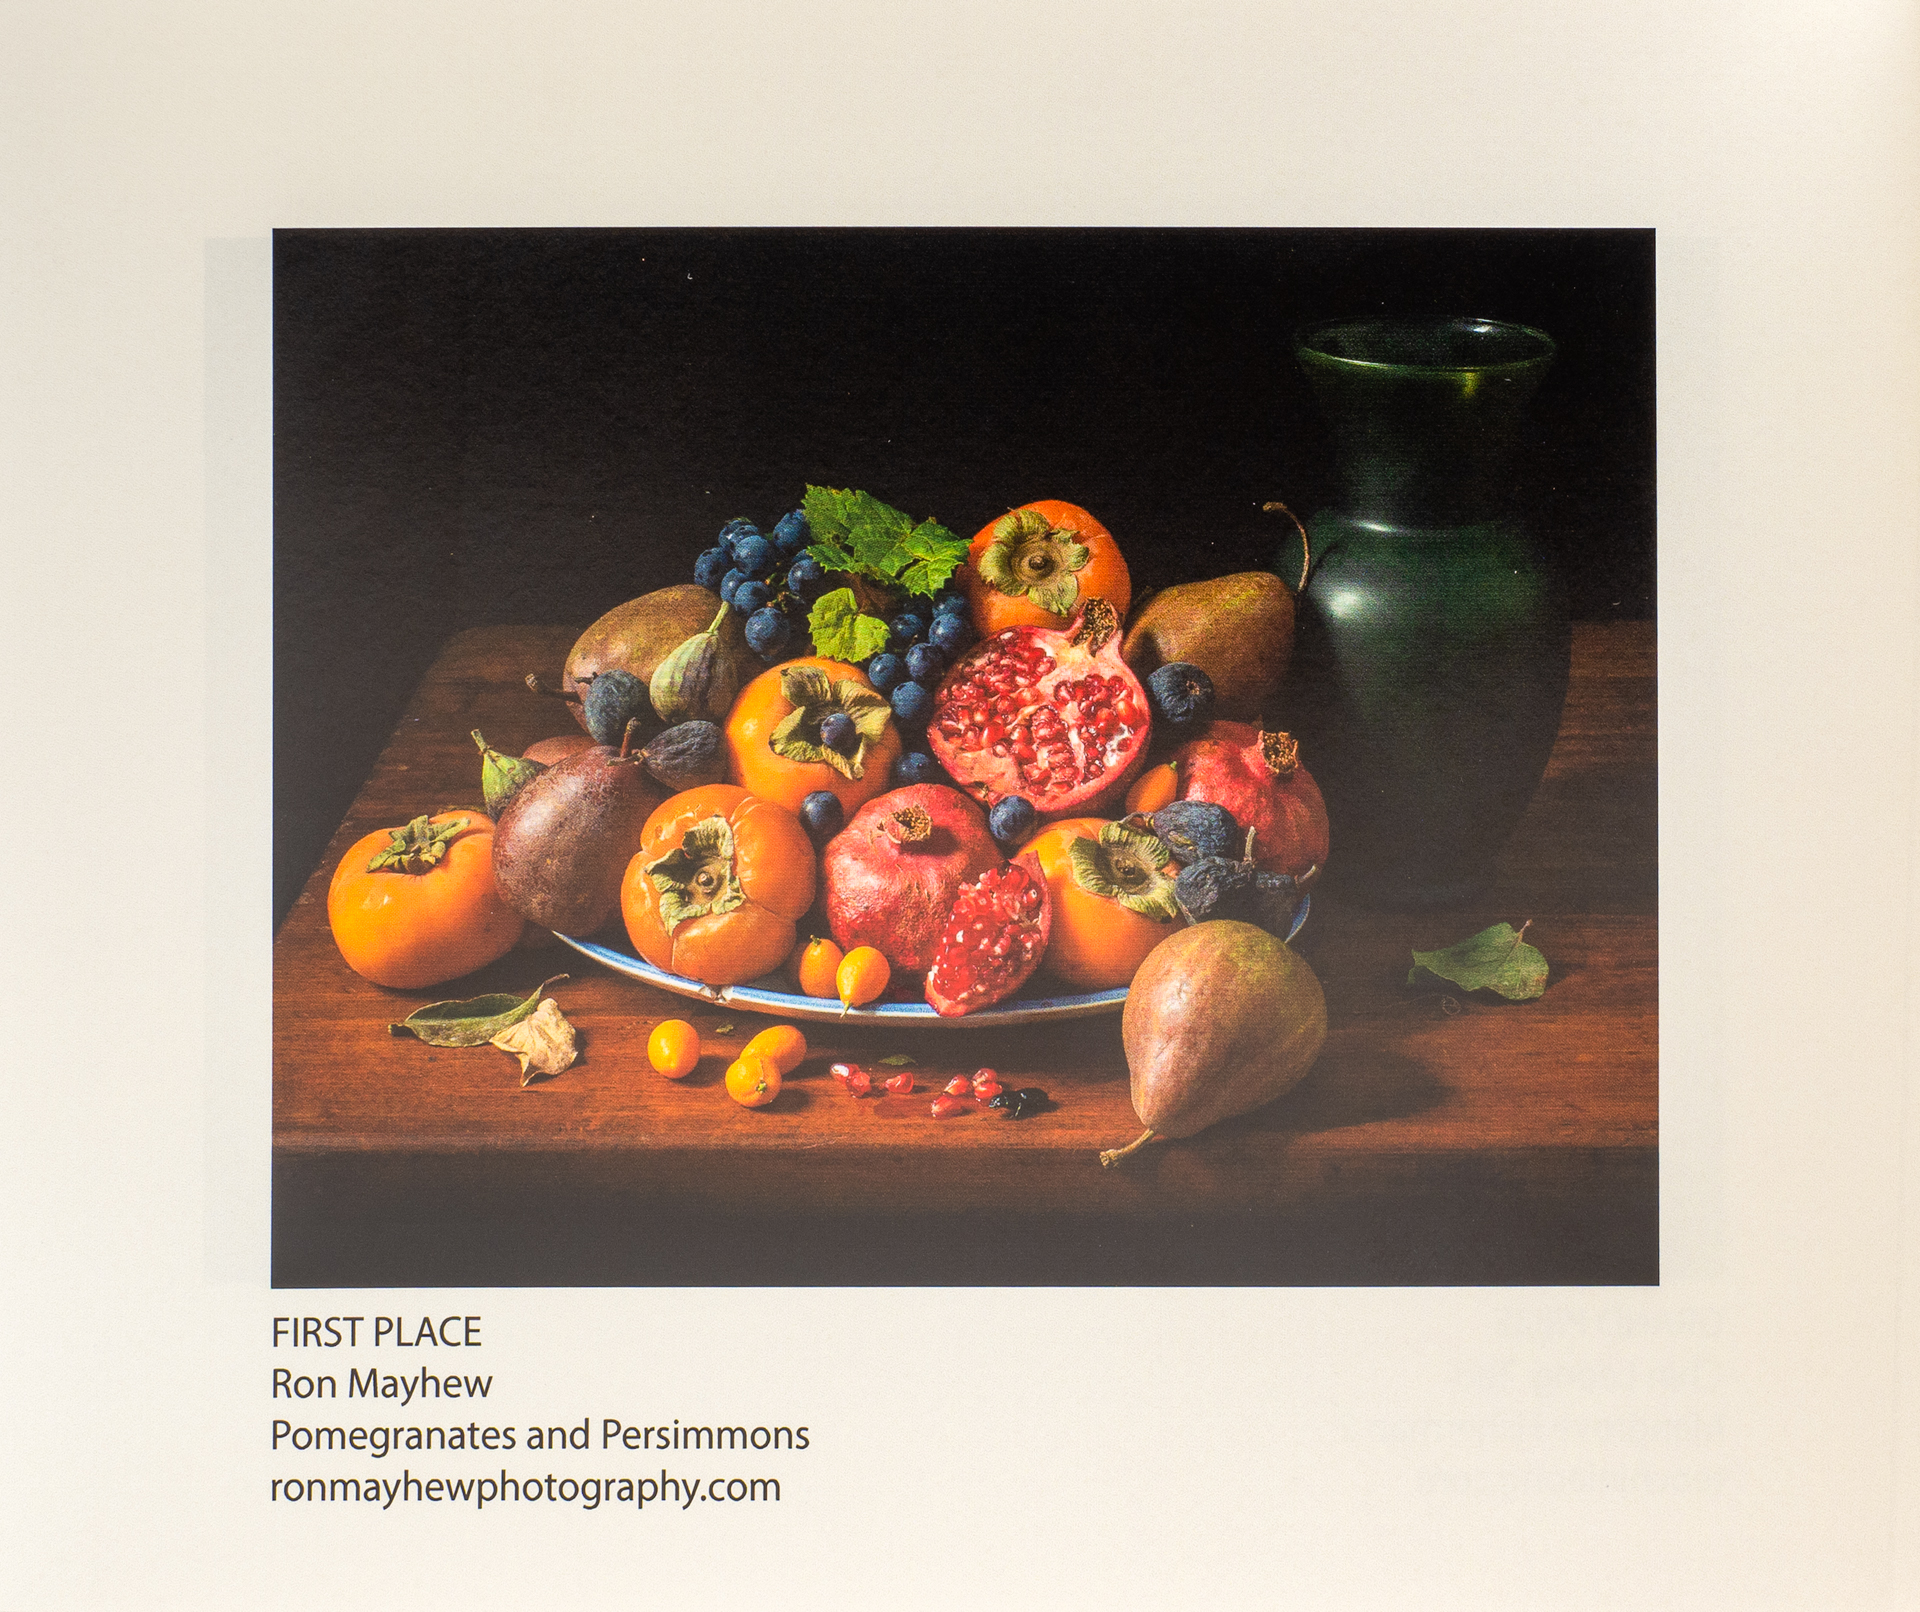 Pomegranate and Persimmons First Place award at the New York City Center for Photographic Art